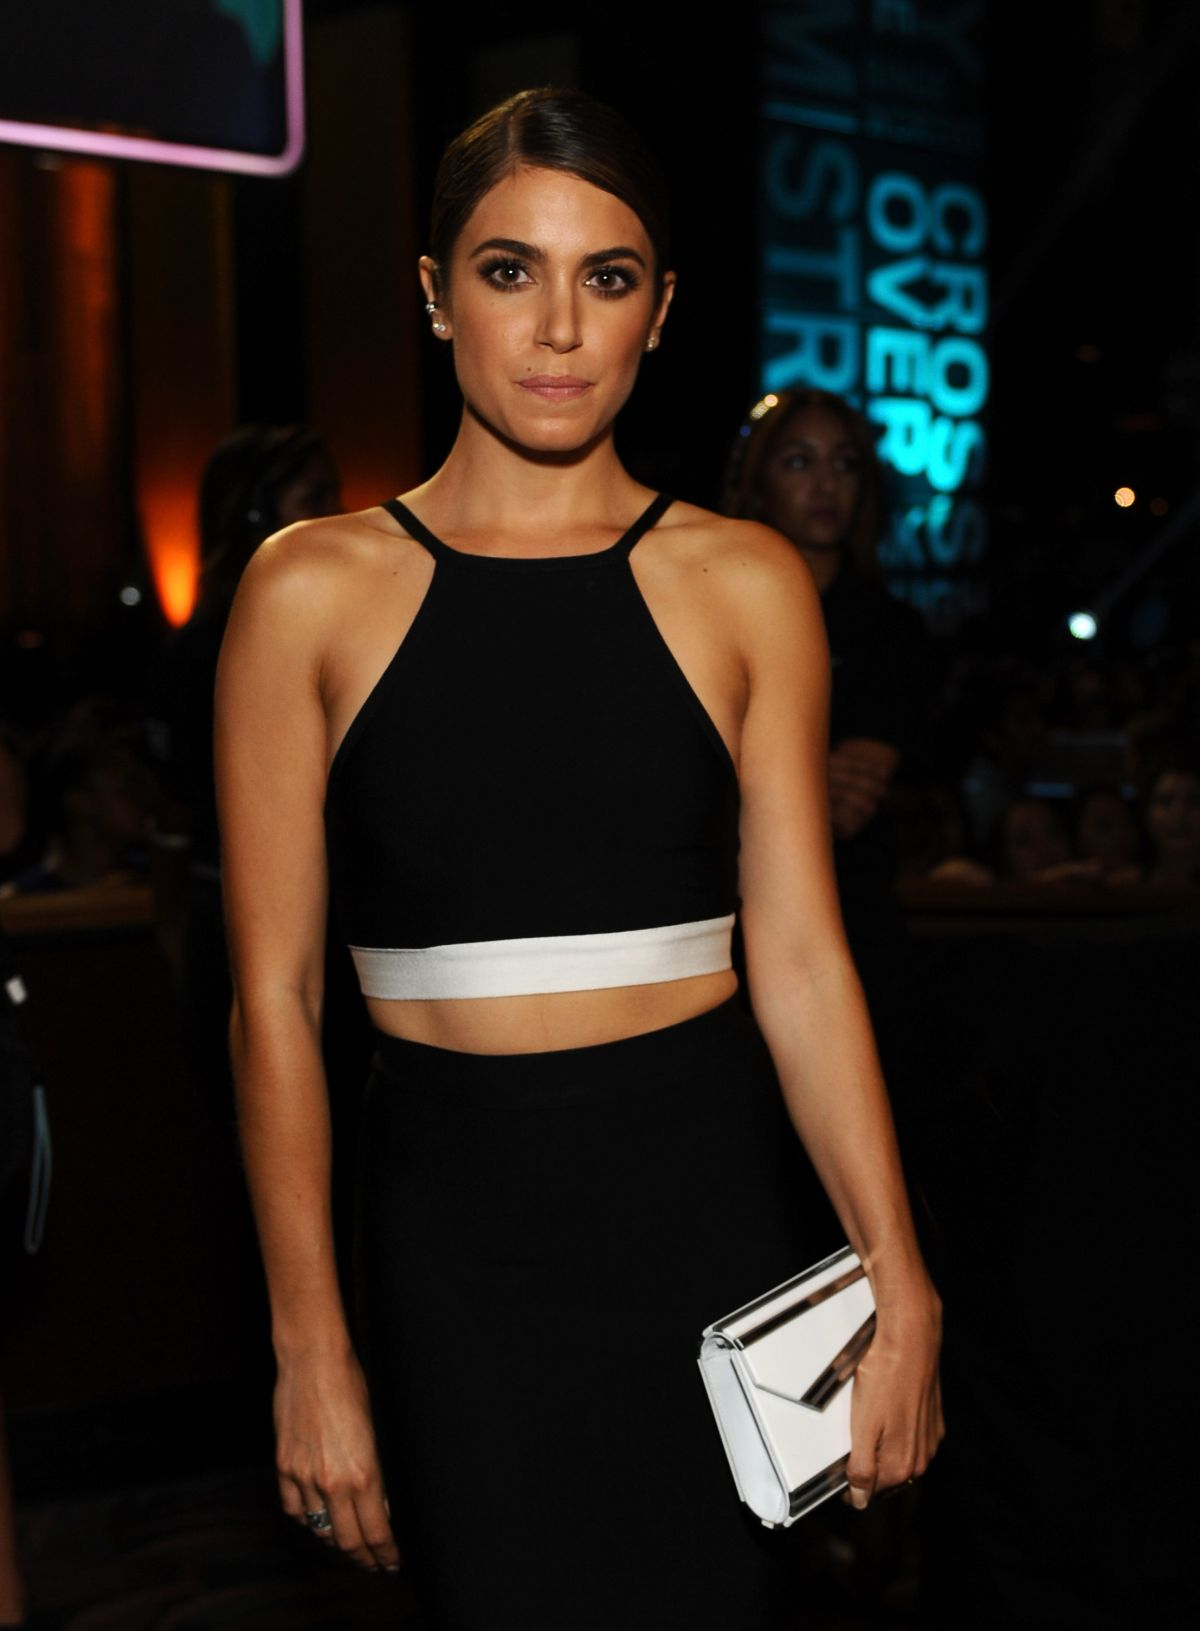 NIKKI REED at Young Hollywood Awards 2014 in Los Angeles